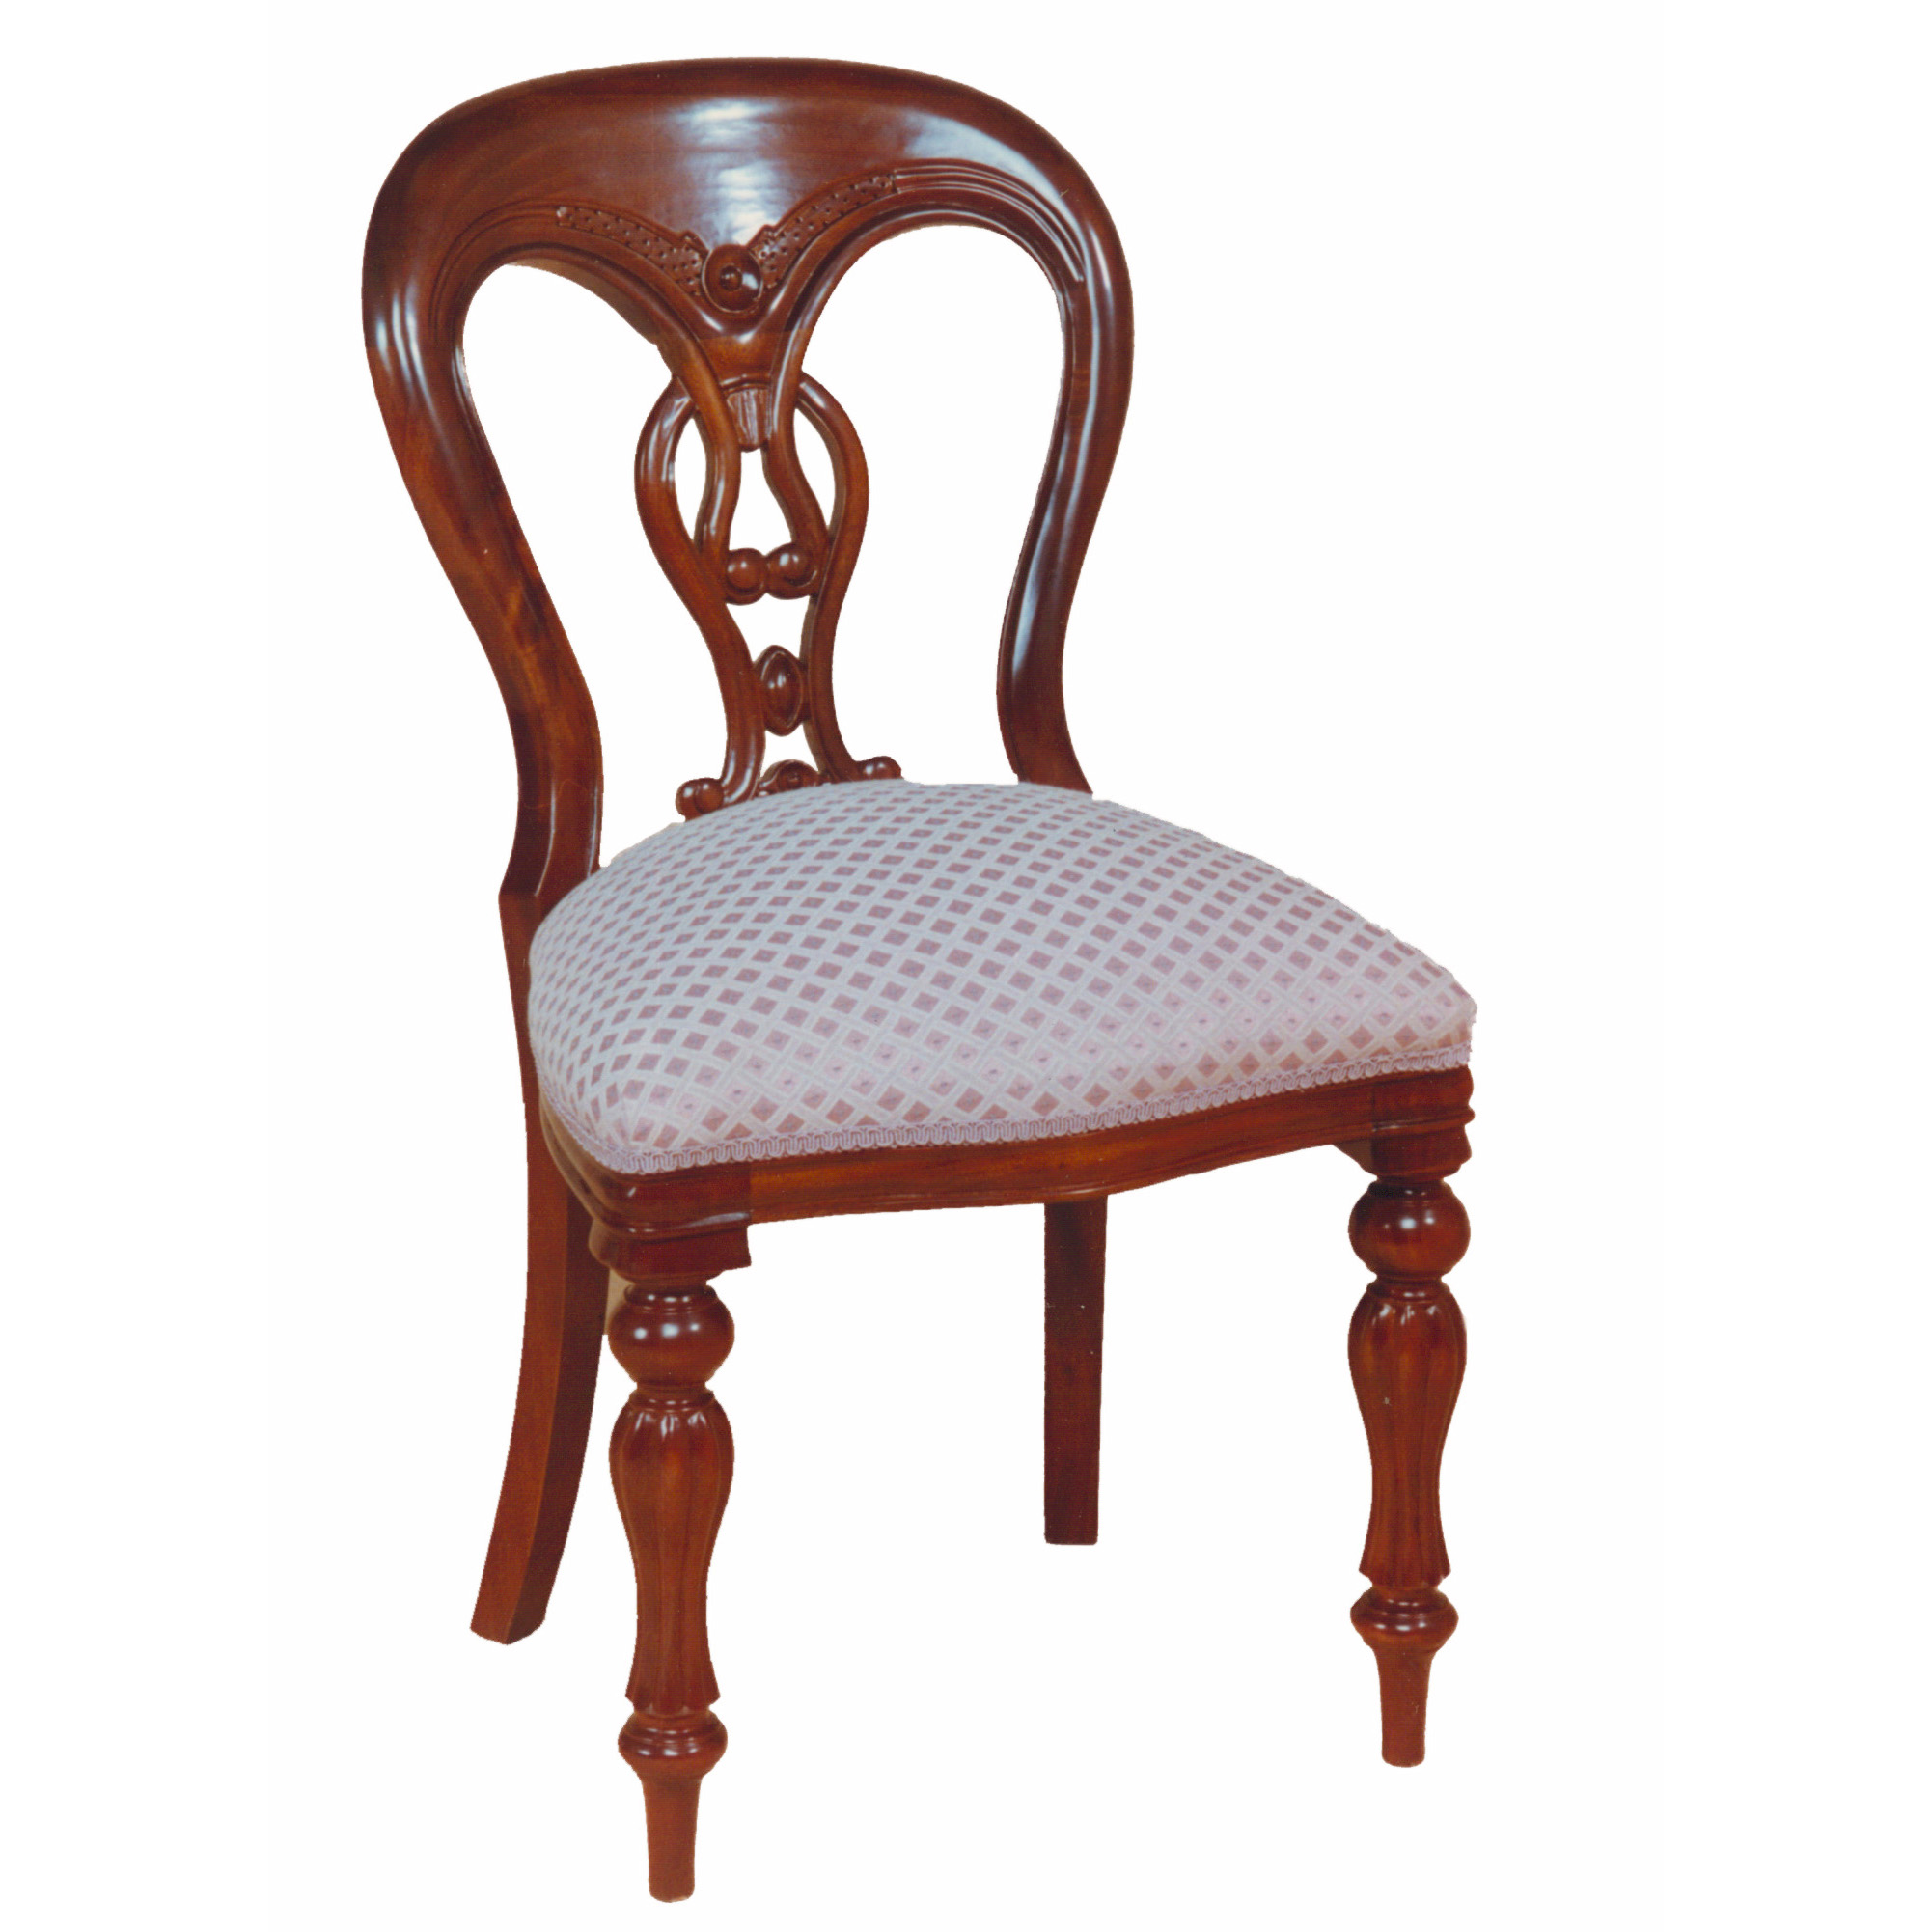 Reproduction balloon back dining chairs, fiddleback style.